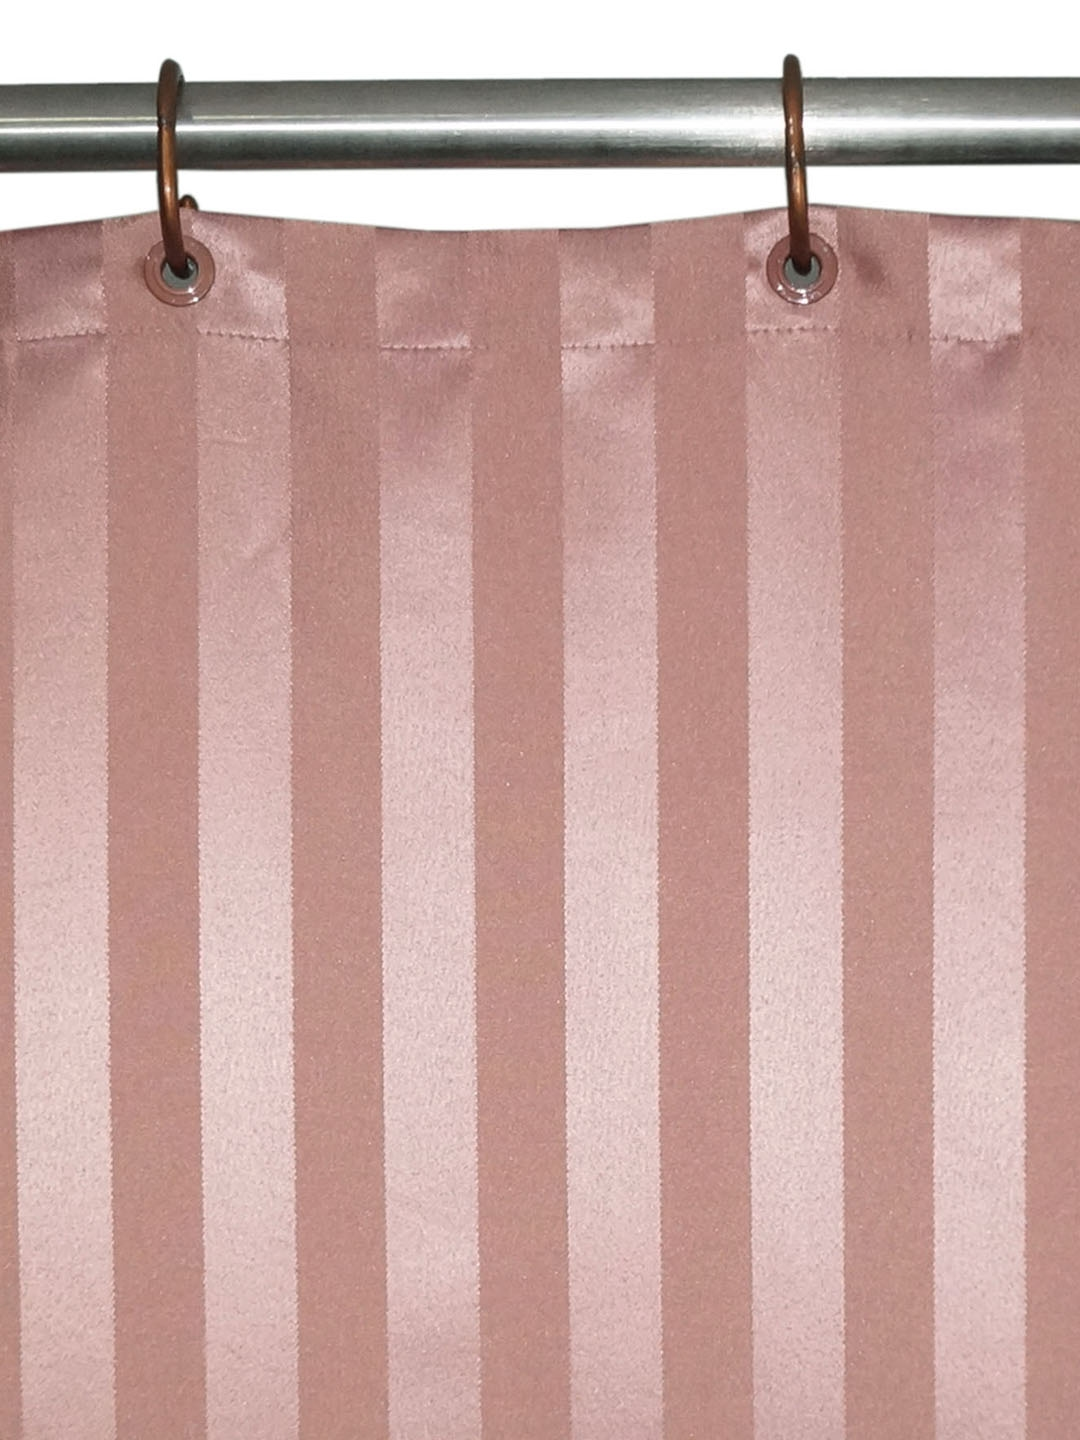 Buy Lushomes Pink Striped Shower Curtain